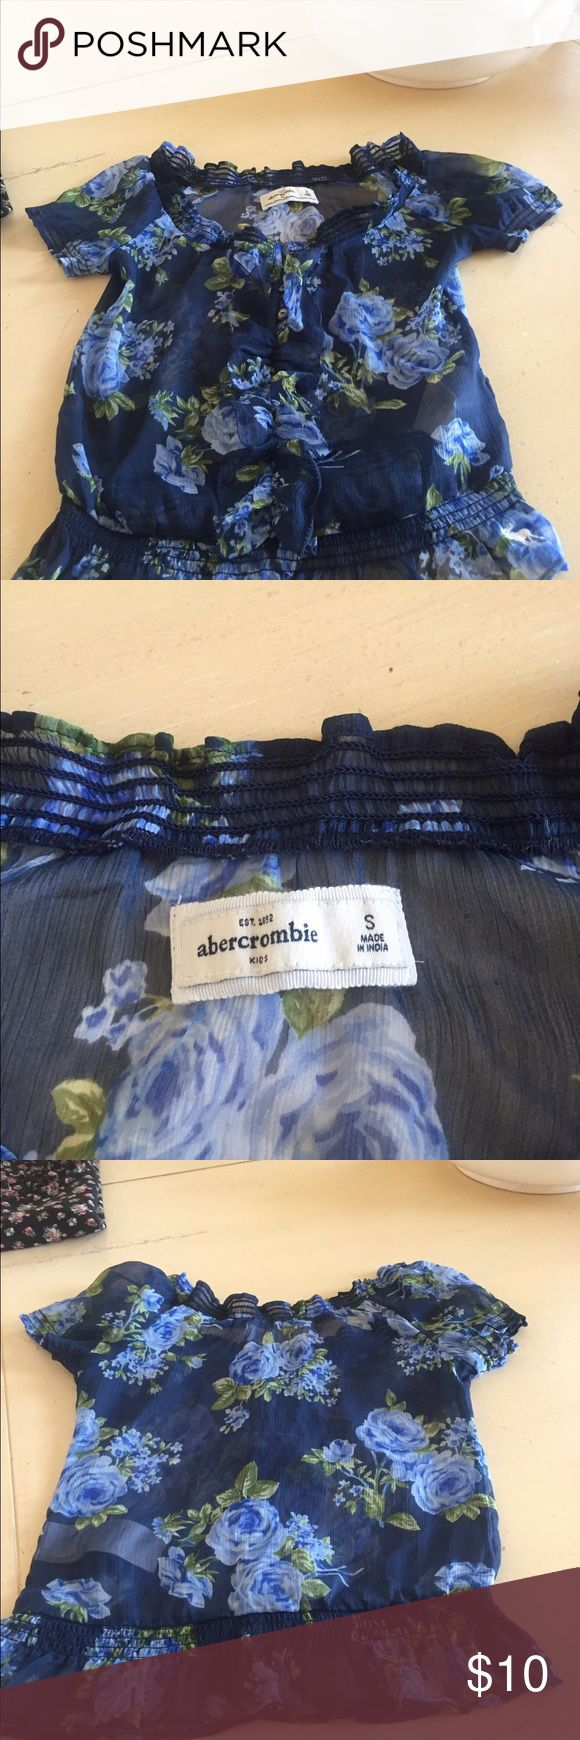 Beautiful Abercrombie girls blouse Navy blouse with light blue and green flowers. Girls small 100% polyester. Need to wear a tank underneath because it is very sheer. abercrombie kids Shirts & Tops Blouses